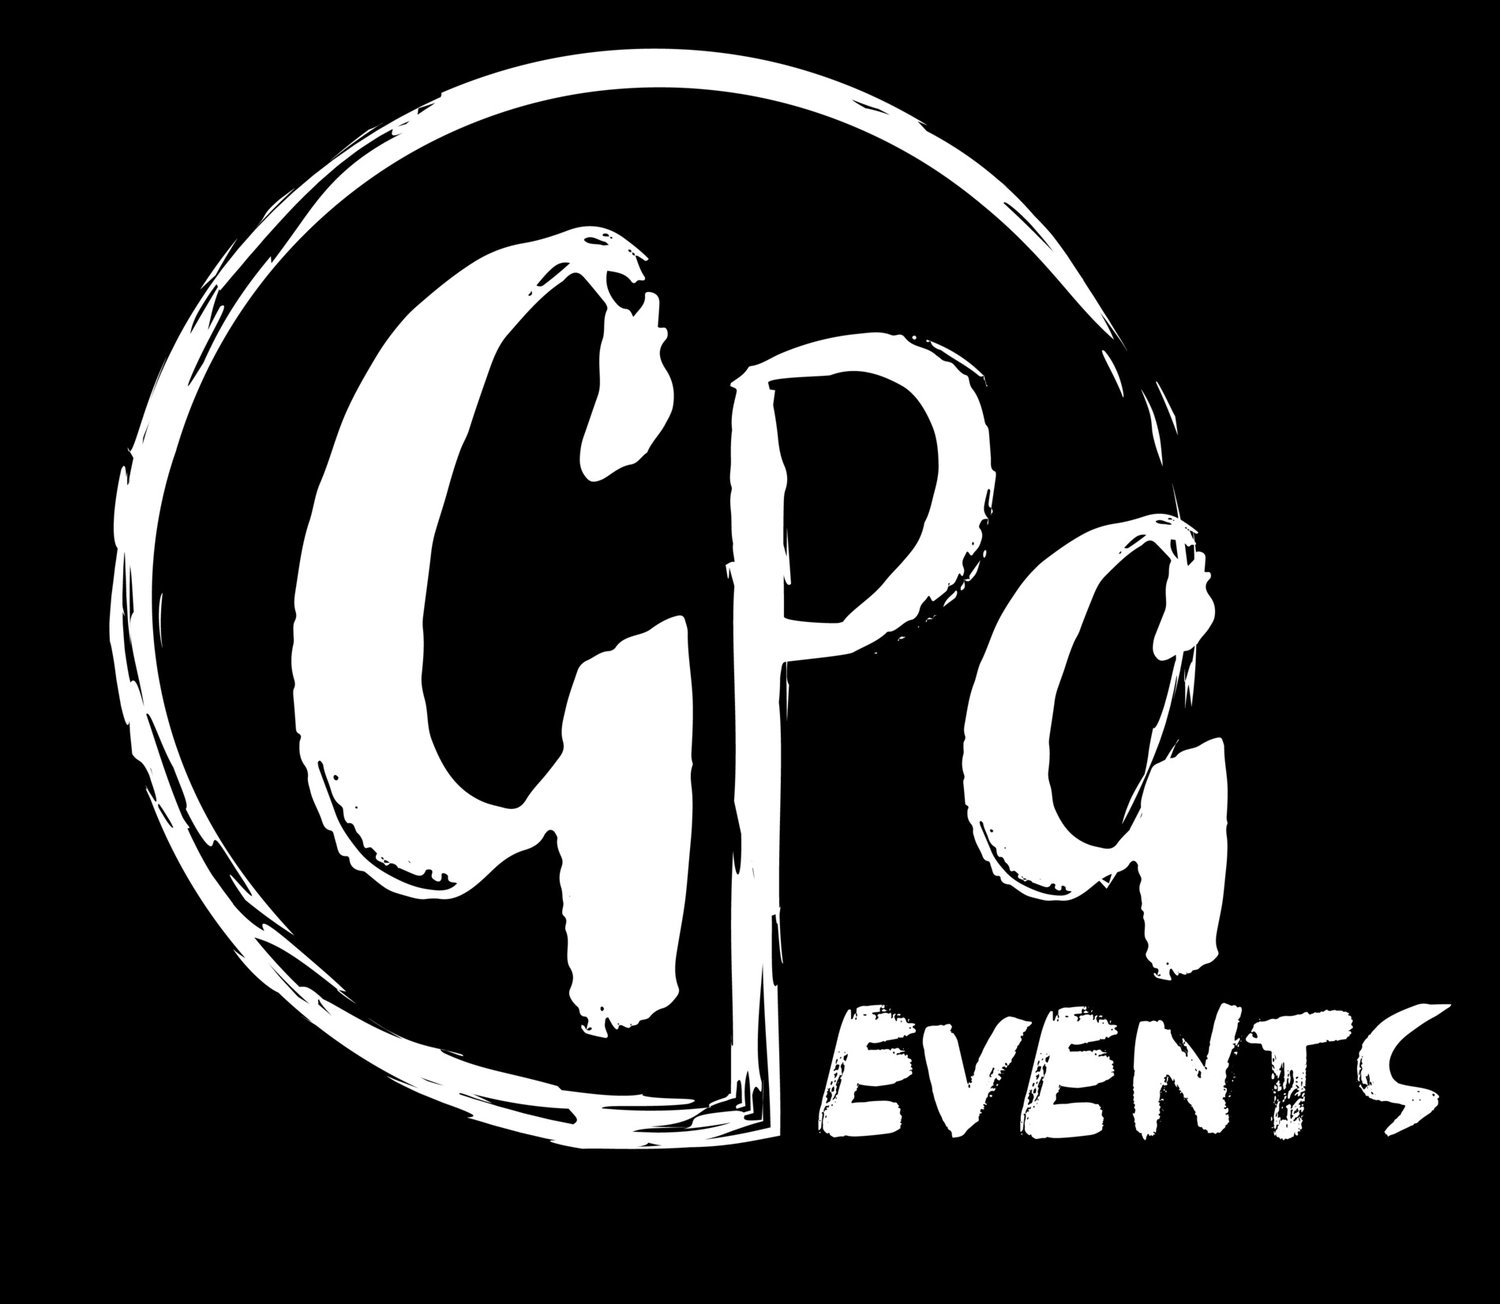 GPG Events